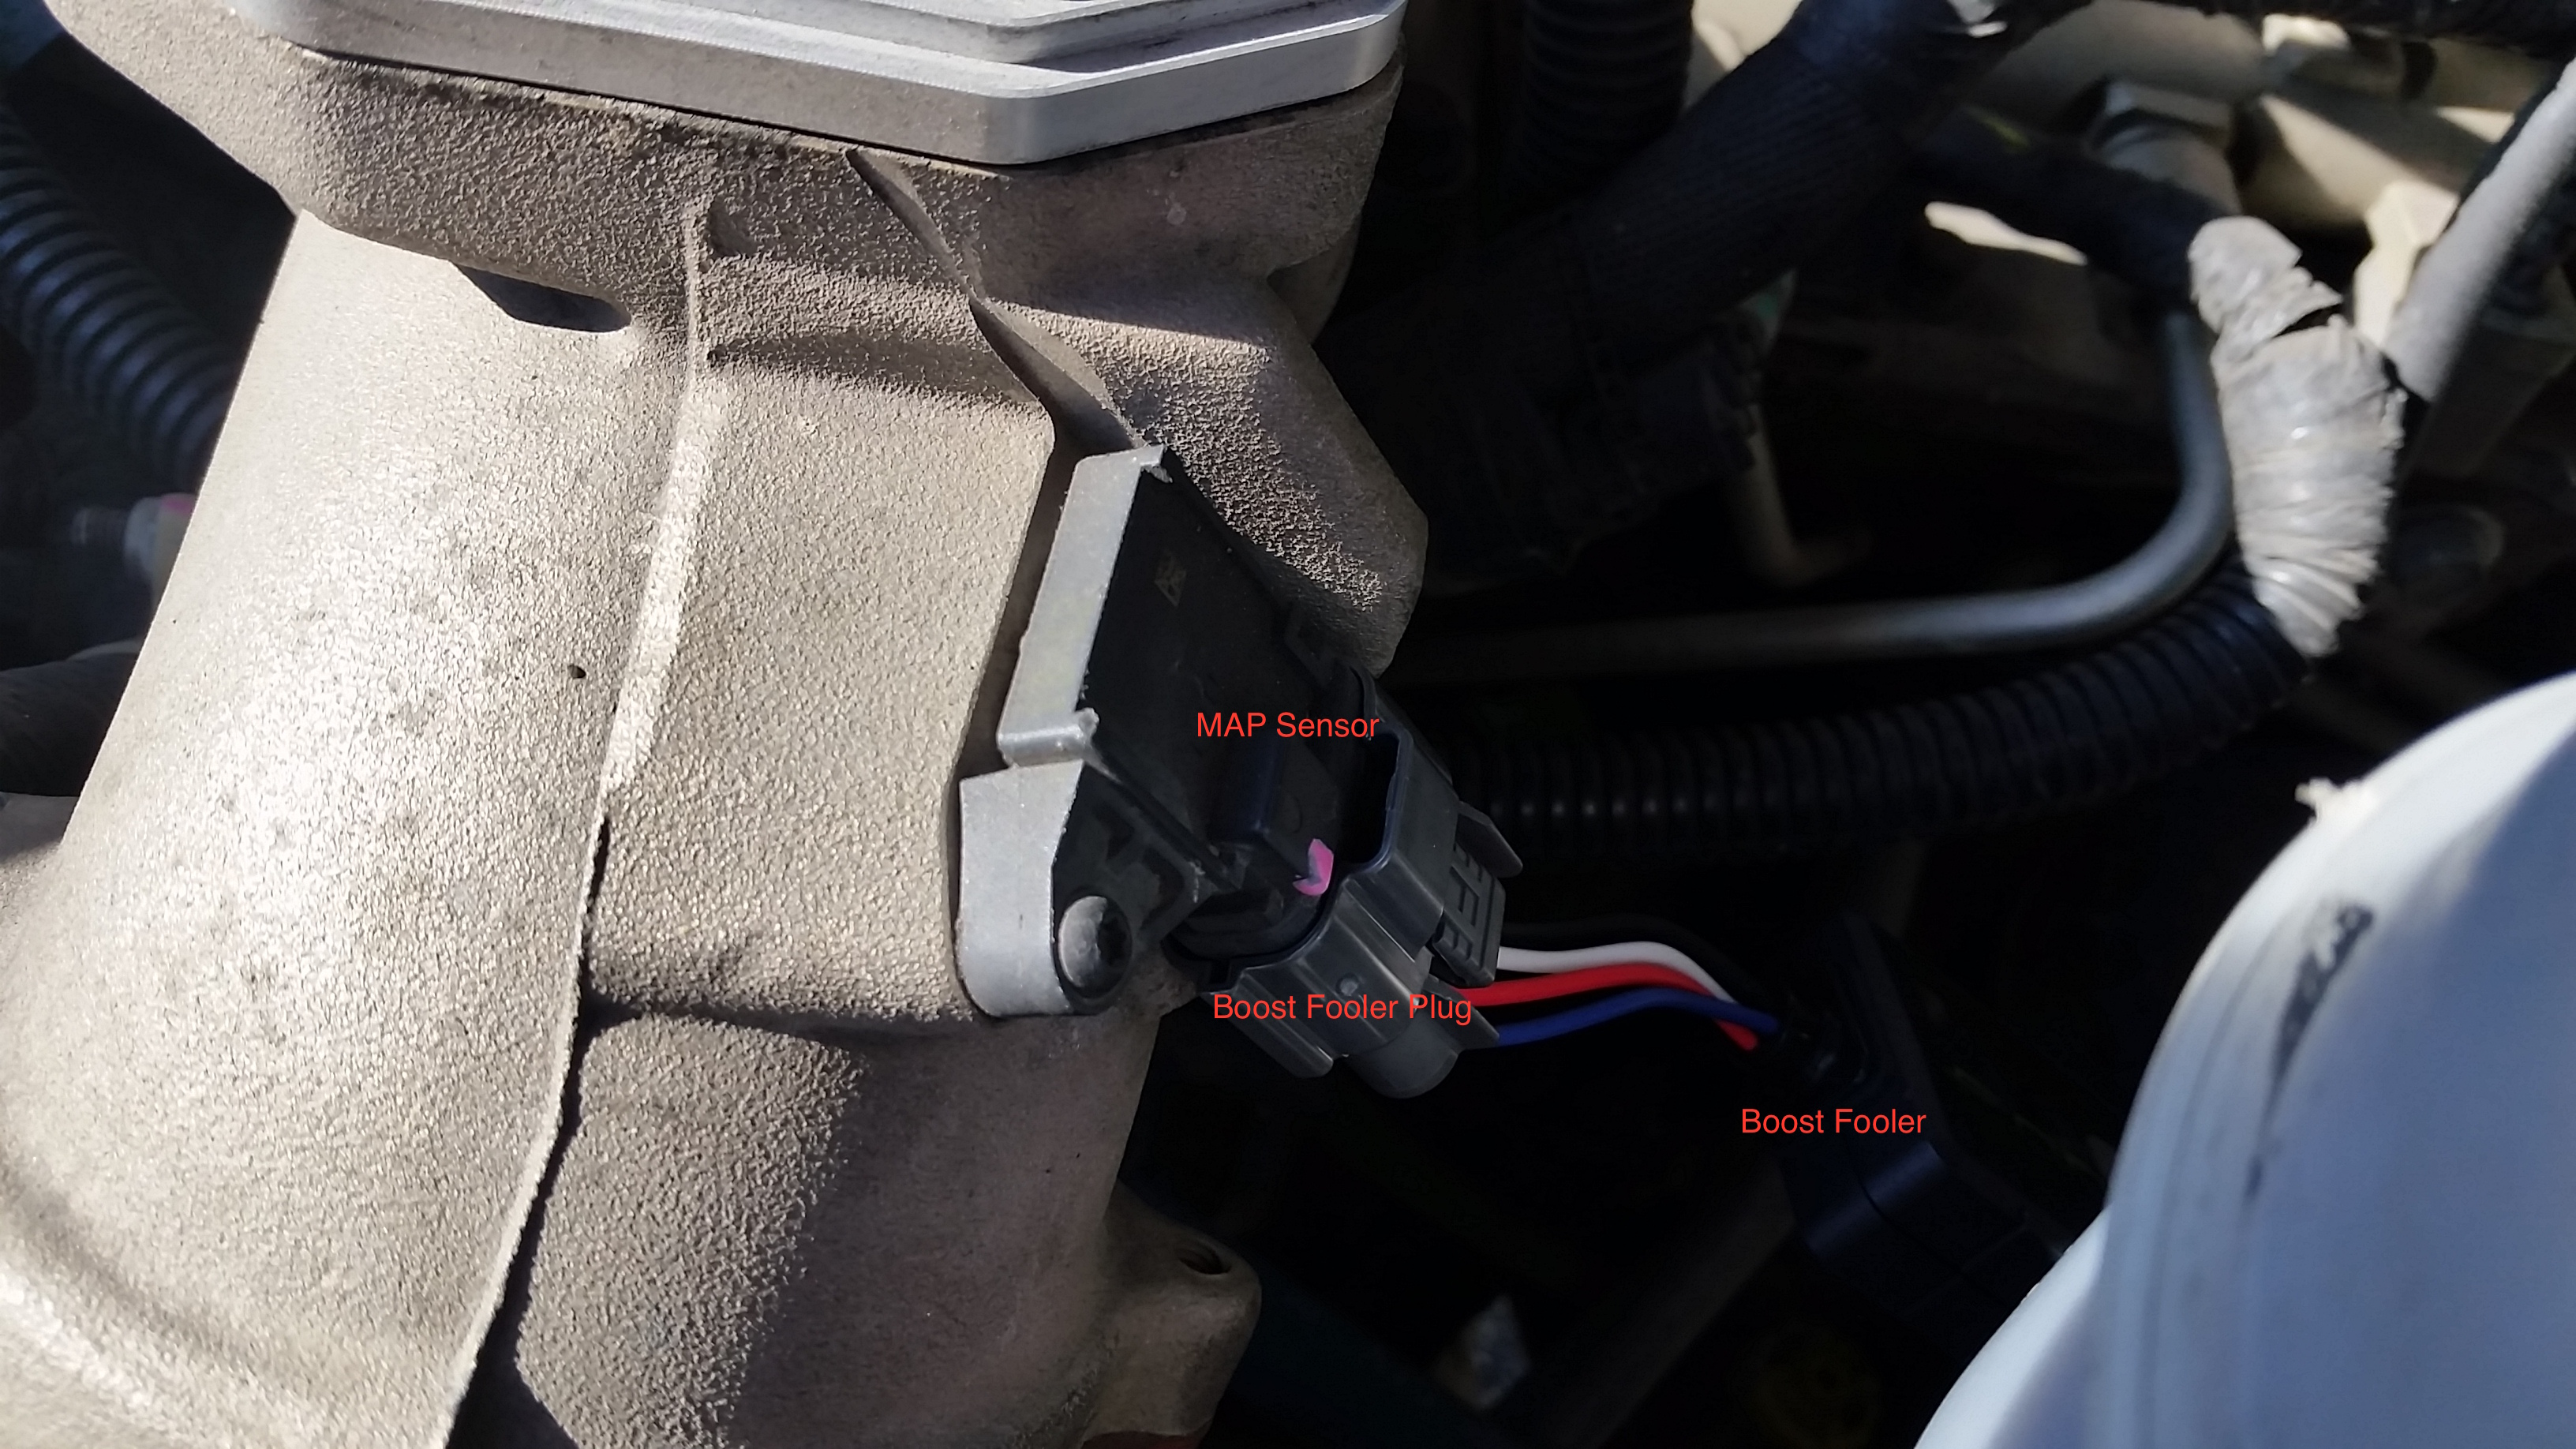 2011-dodge-cummins-map-sensor.jpg